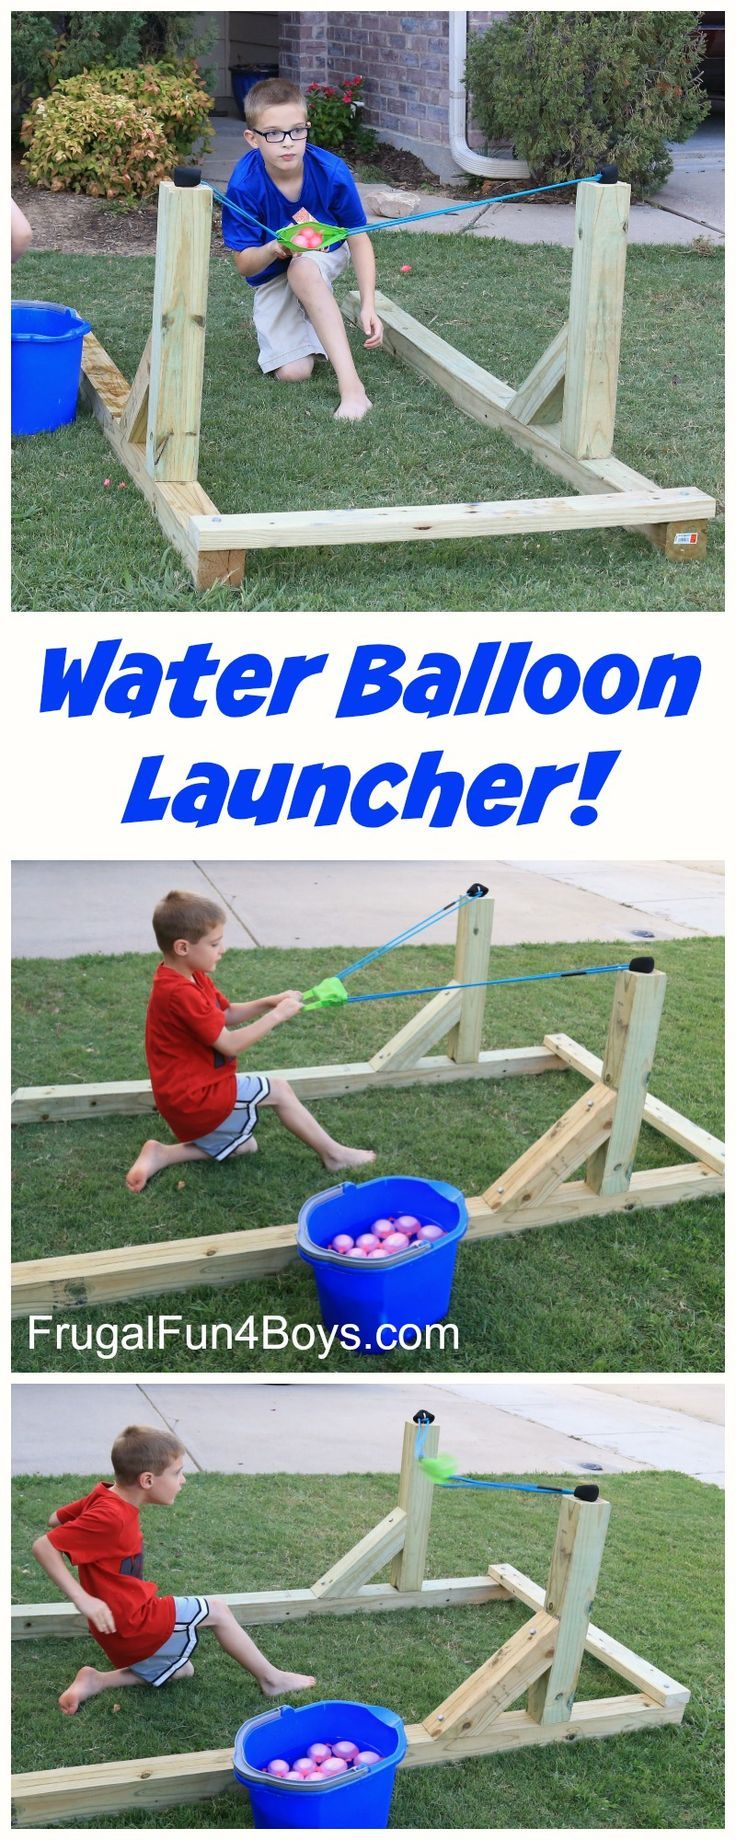 Build a simple water balloon launcher than sends balloons flying 300 ft.! This is a one man launcher that kids of all ages can easily shoot.